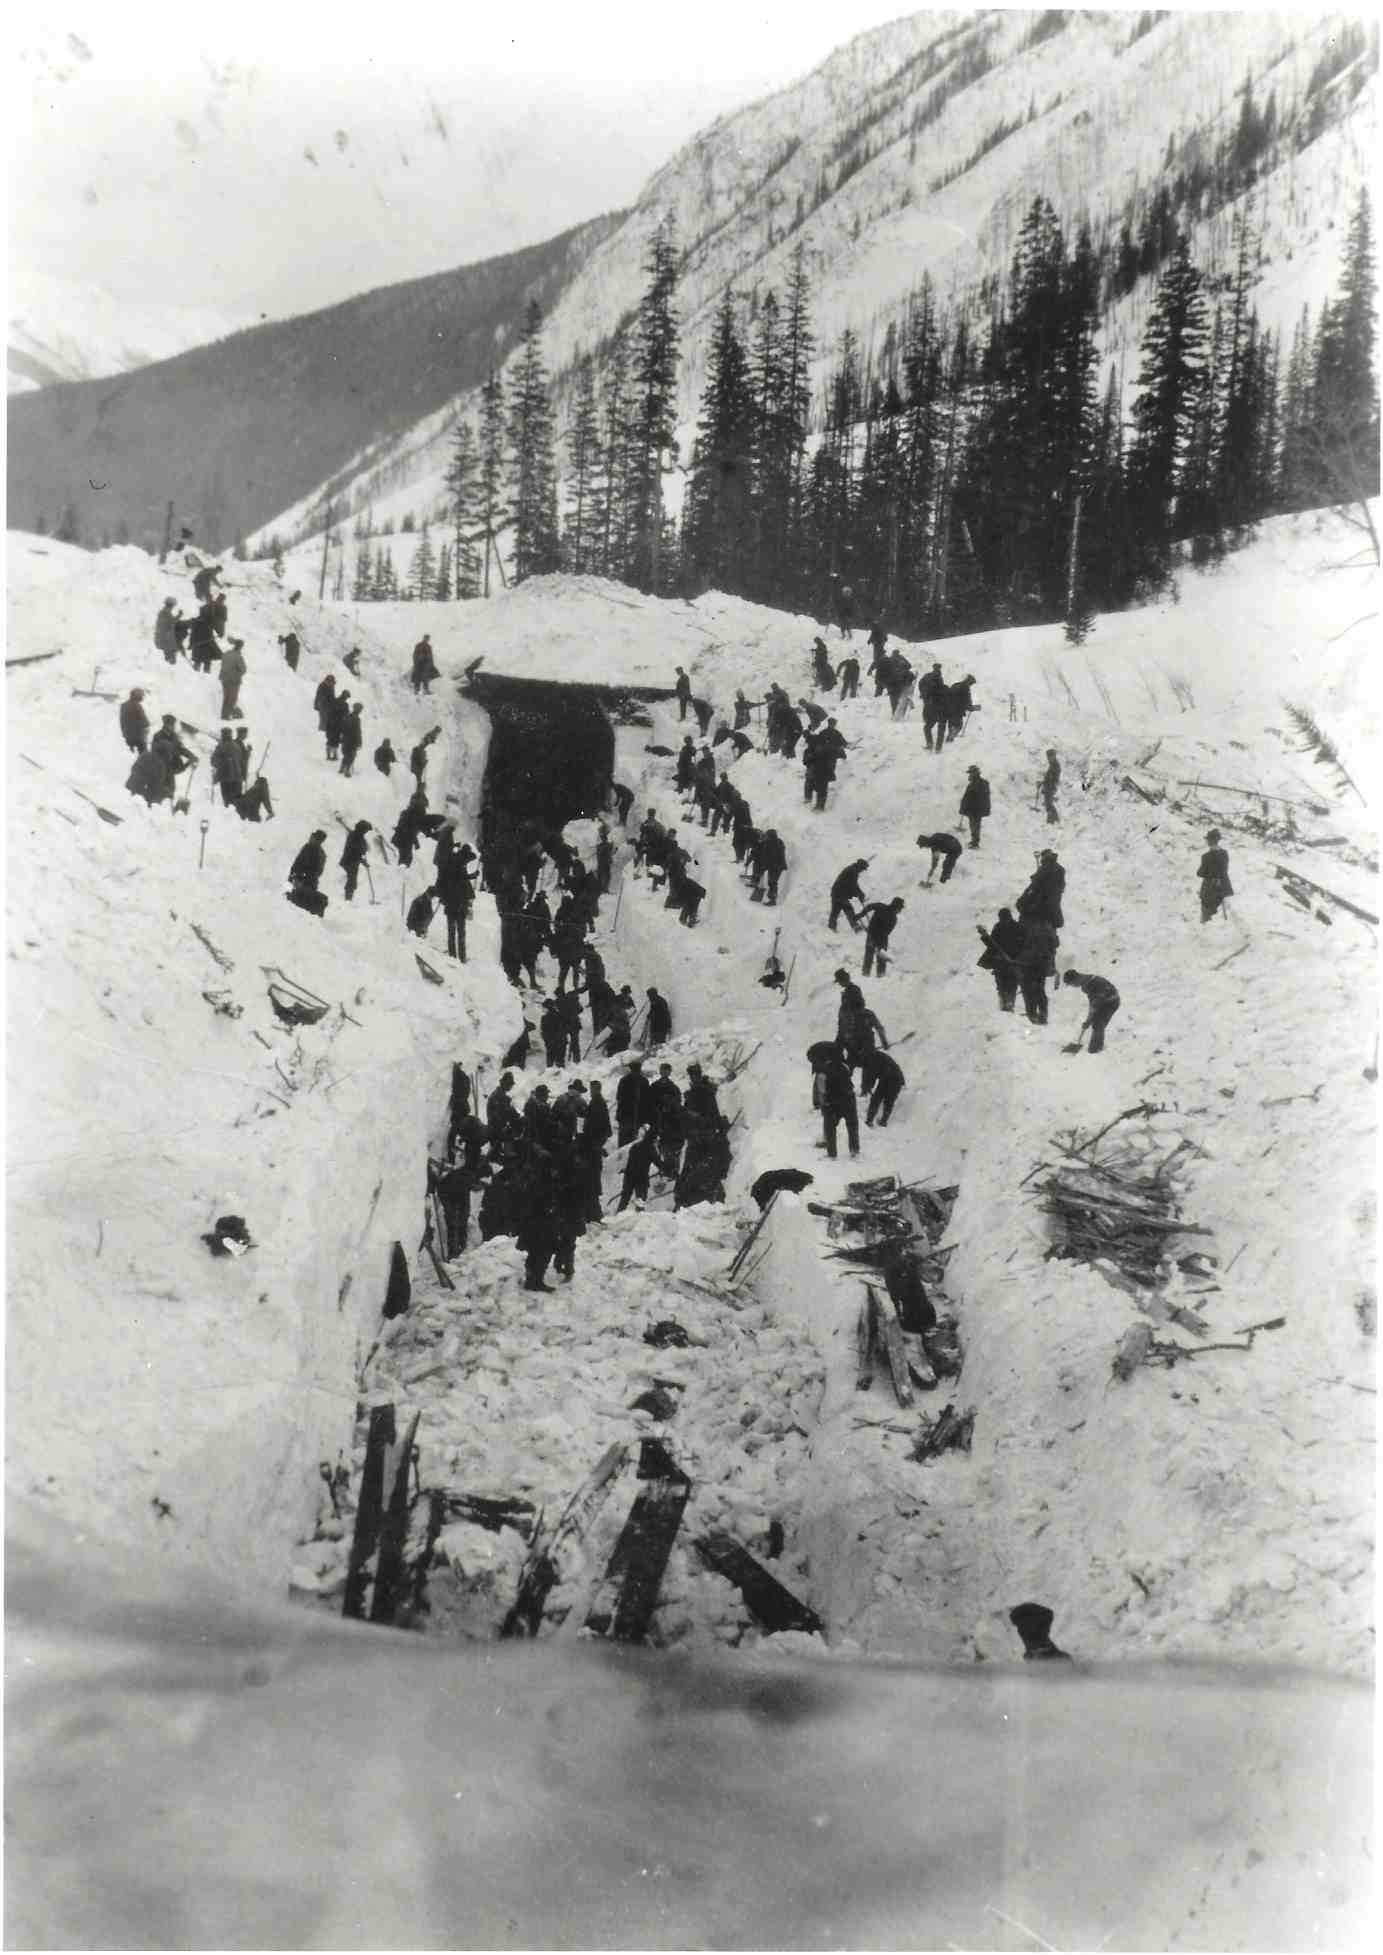 Exclusive-25th-Anniversary-Release-of-Locomotion-Ski-Film-Rogers-Pass-avalanche-LO-wikimediacommons268